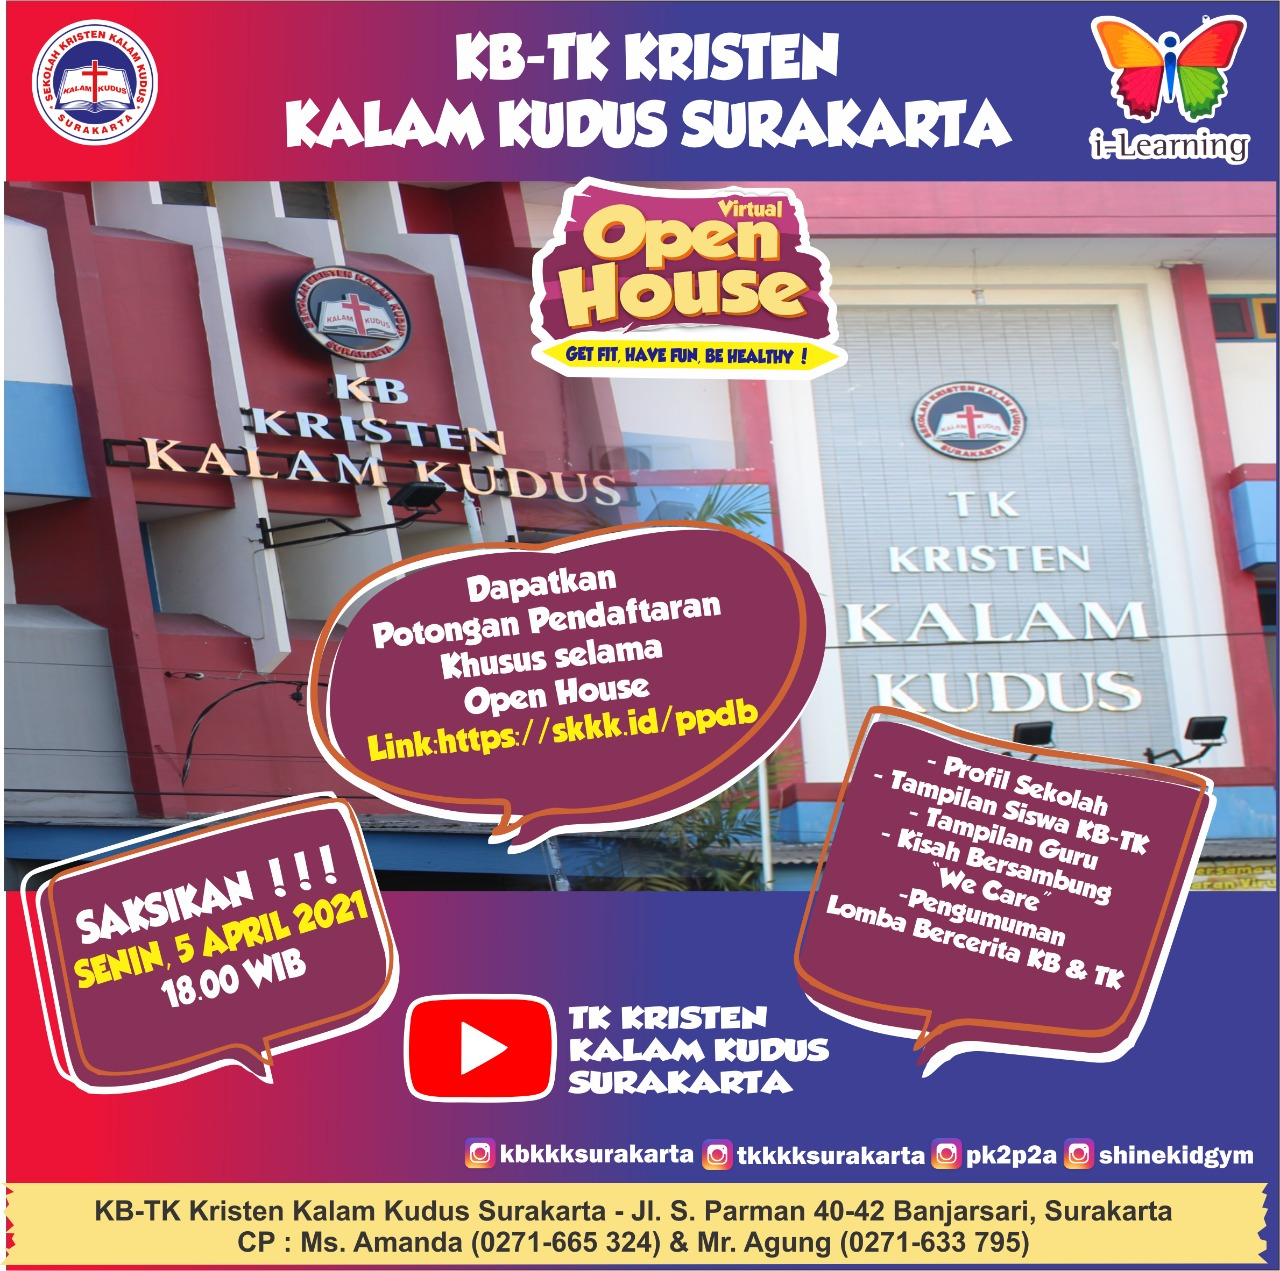 Virtual Open House KB-TK Kristen Kalam Kudus Surakarta - 05 April 2021